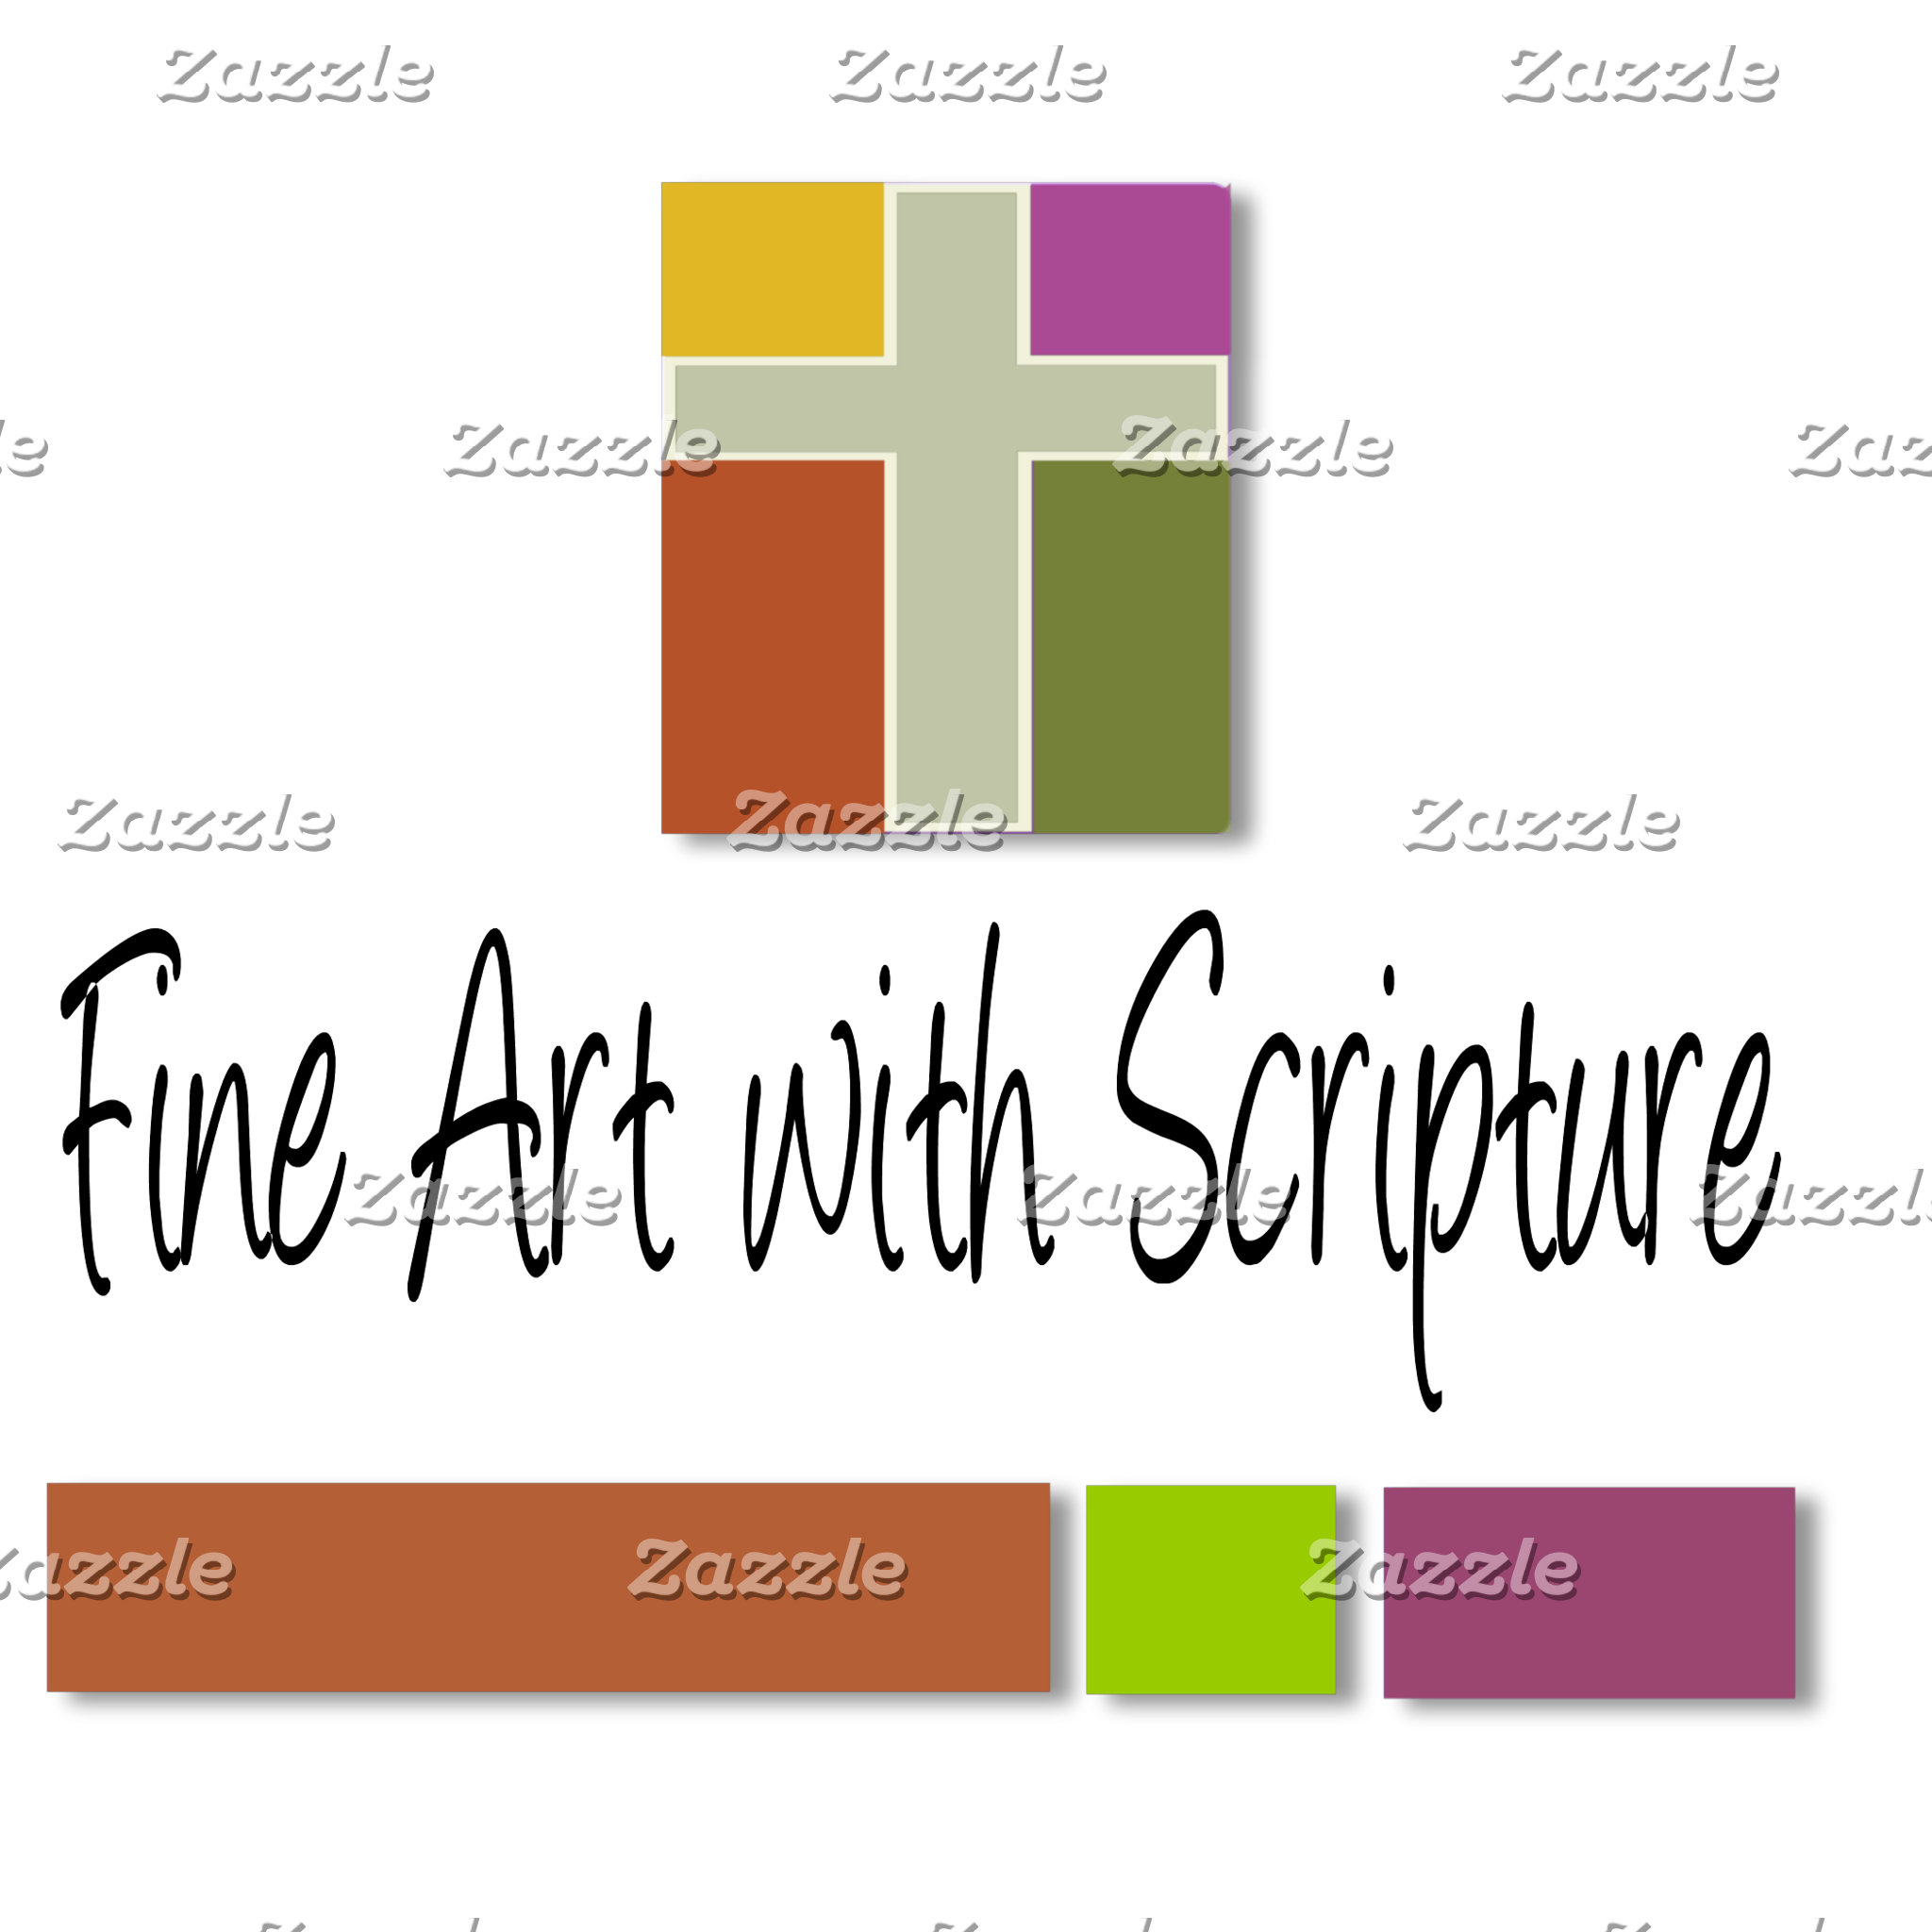 FINE ART with Scripture Verses Added